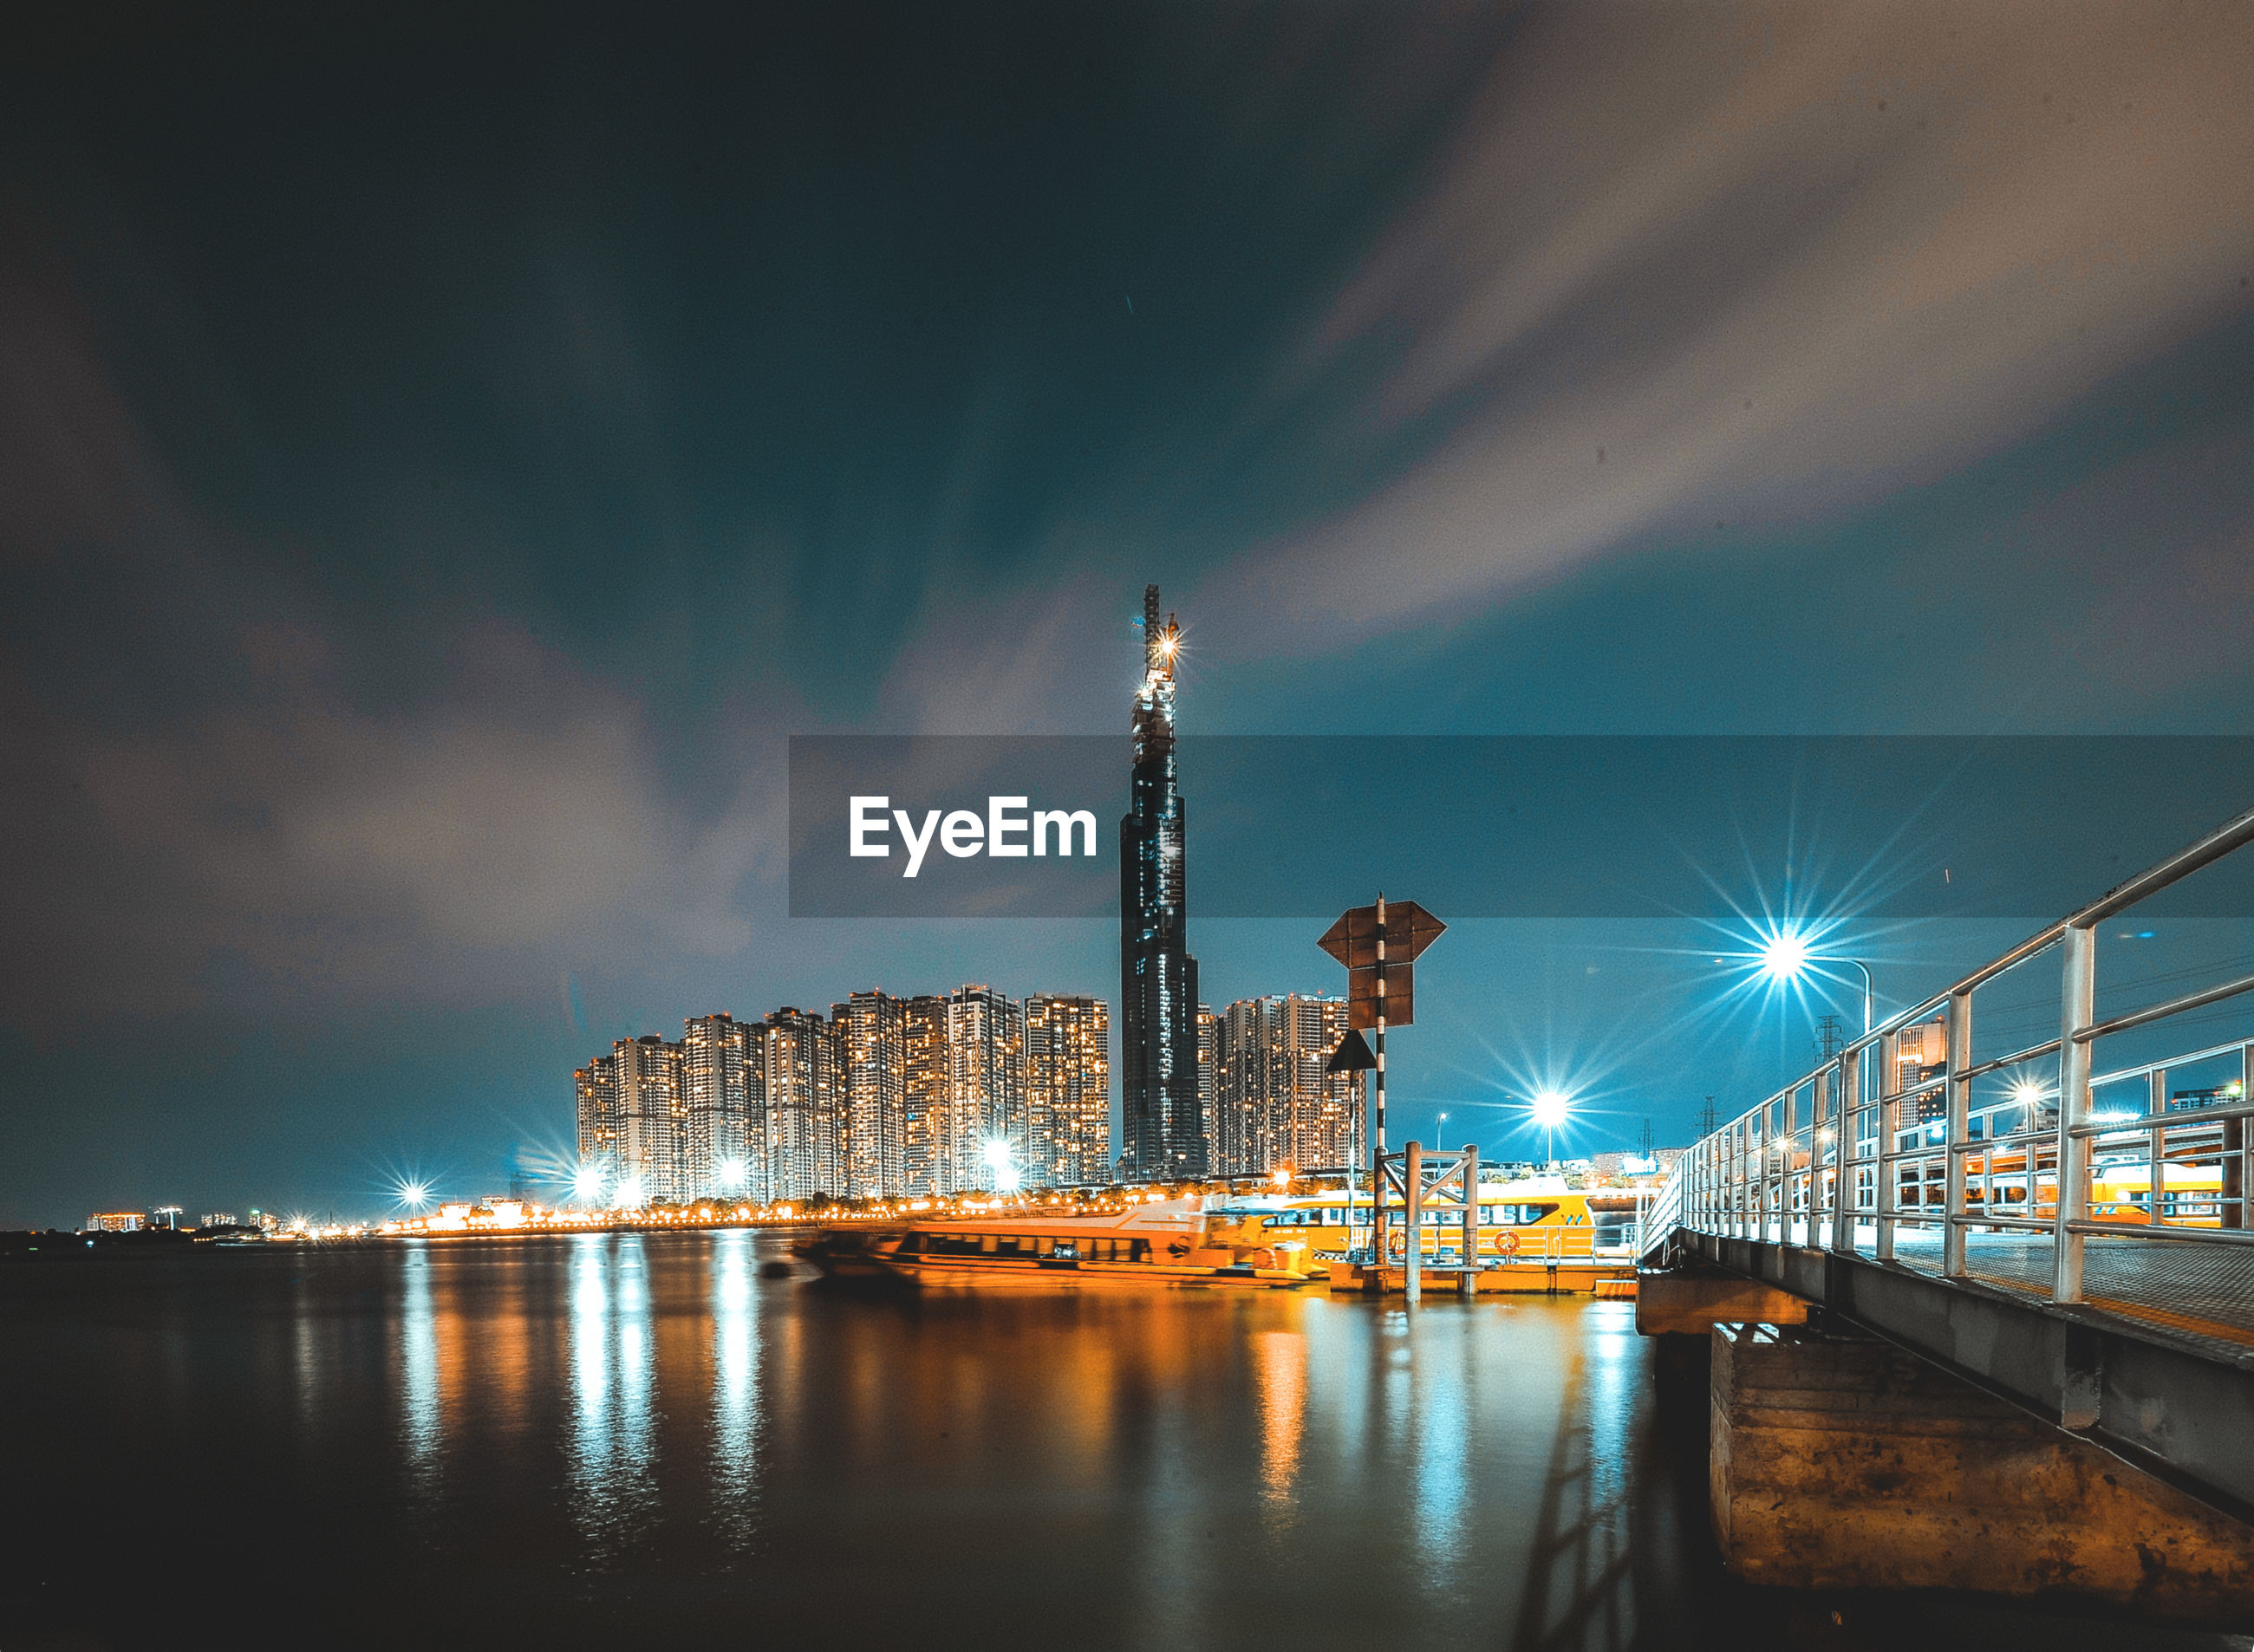 architecture, illuminated, water, built structure, sky, building exterior, night, city, transportation, cloud - sky, reflection, nature, river, waterfront, bridge - man made structure, bridge, no people, building, connection, tall - high, cityscape, skyscraper, office building exterior